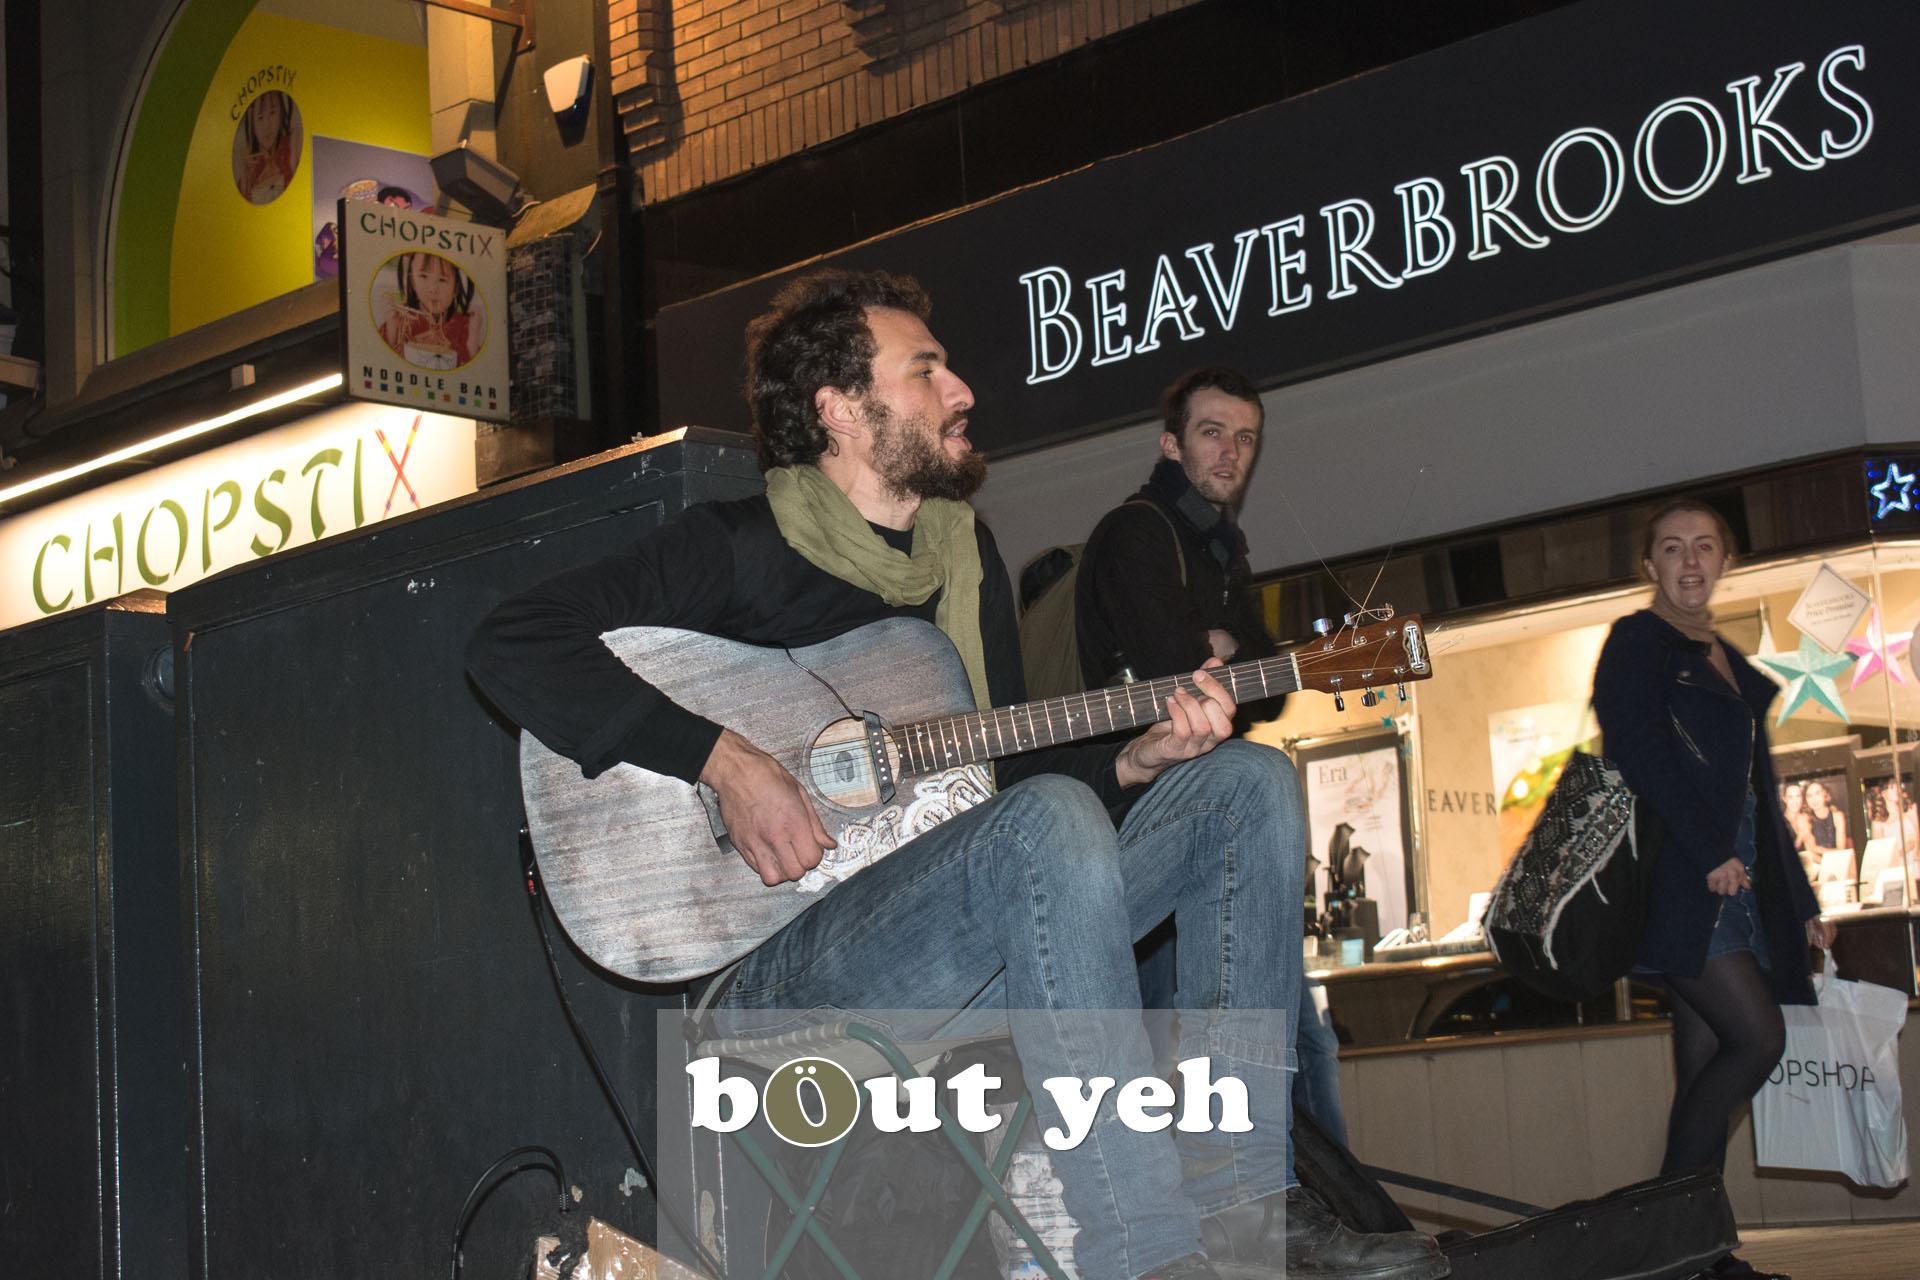 Australian busker playing guitar in Donegal Place, Belfast - bout yeh photographers Belfast photo 3388.